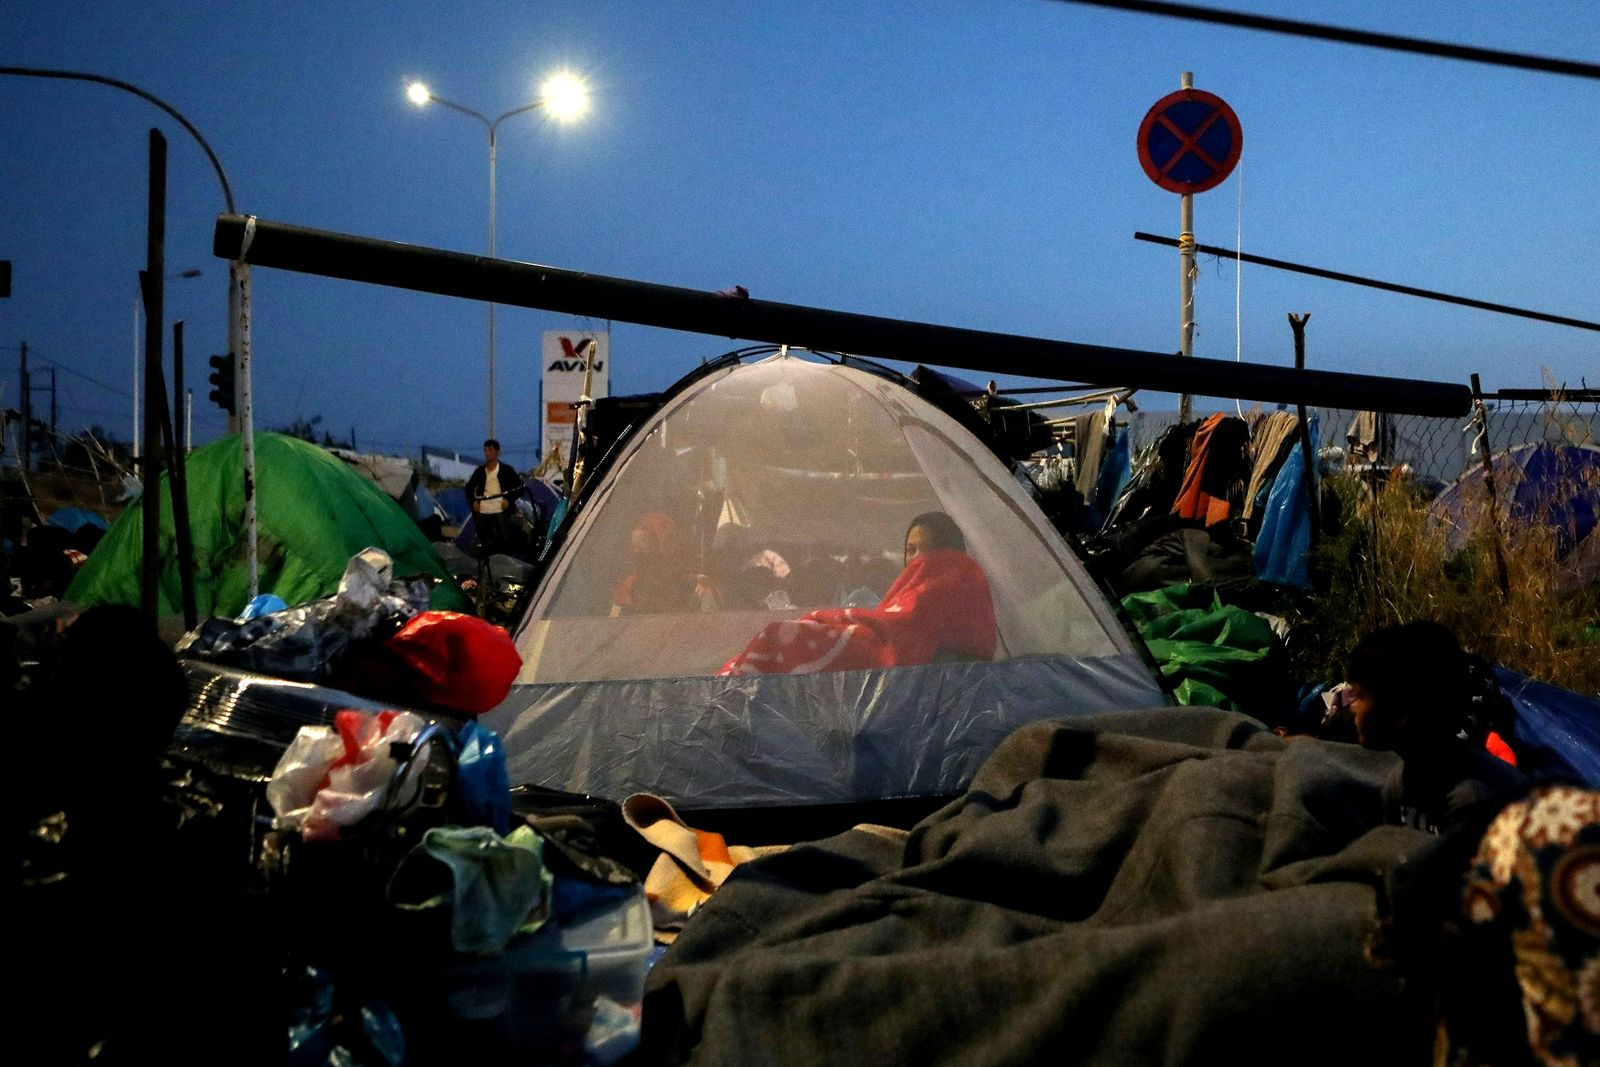 A woman is seen inside a tent as refugees and migrants from the destroyed Moria camp sleep, near a new temporary camp, on the island of Lesbos